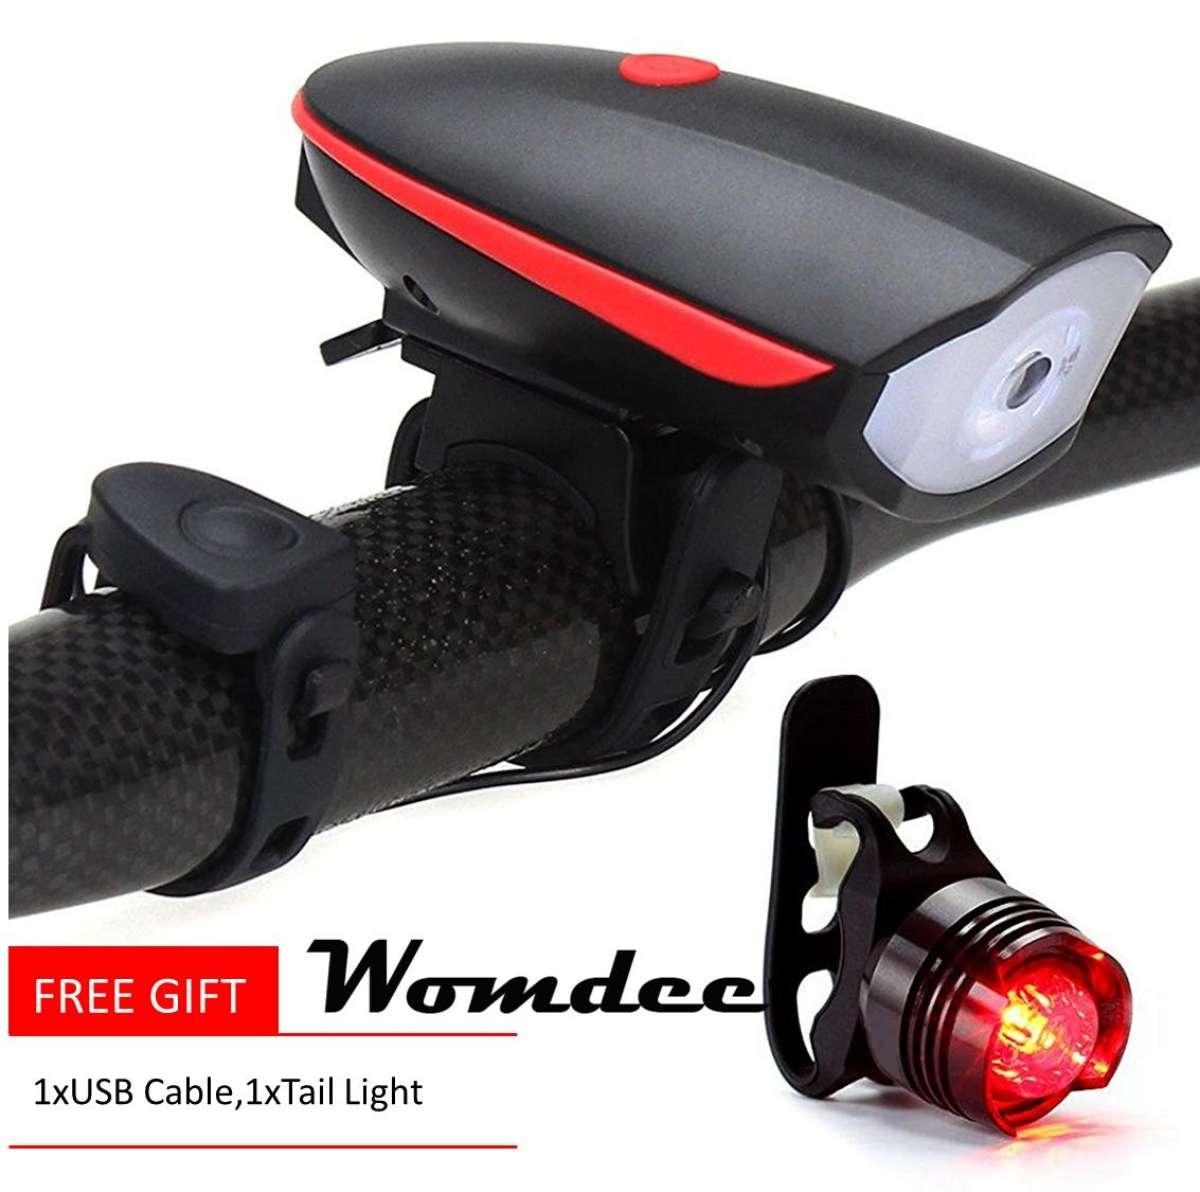 Bike Lights For Sale Cycling Online Brands Prices Wiring A 8 Wire Turn Signal W Horn Womdee Headlight With 120 Db And Tail Light Lover Ultra Brightness